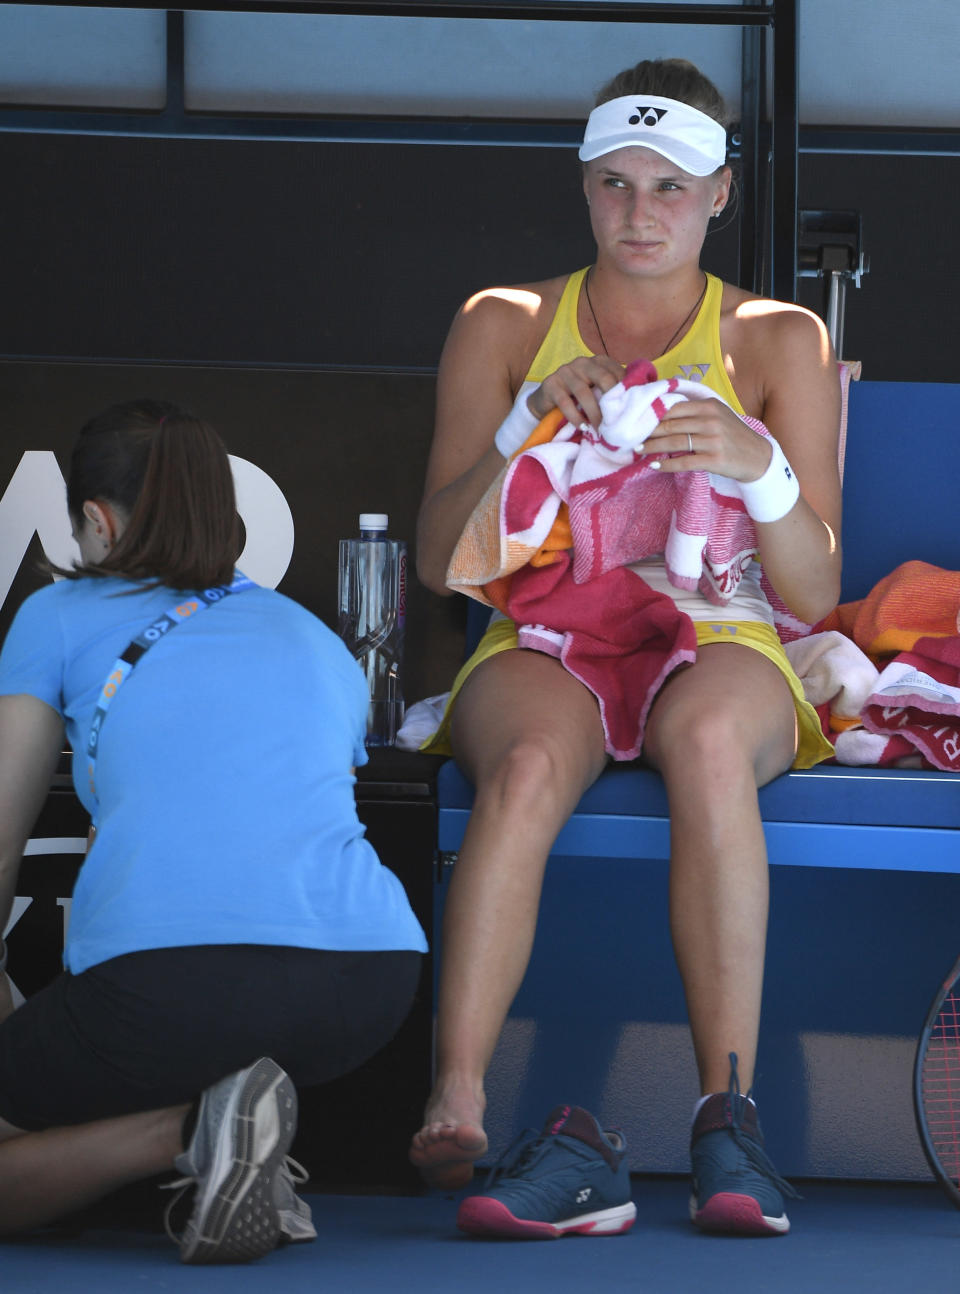 Ukraine's Dayana Yastremska waits to receive treatment to a foot injury during her third round match against United States' Serena Williams at the Australian Open tennis championships in Melbourne, Australia, Saturday, Jan. 19, 2019. (AP Photo/Andy Brownbill)